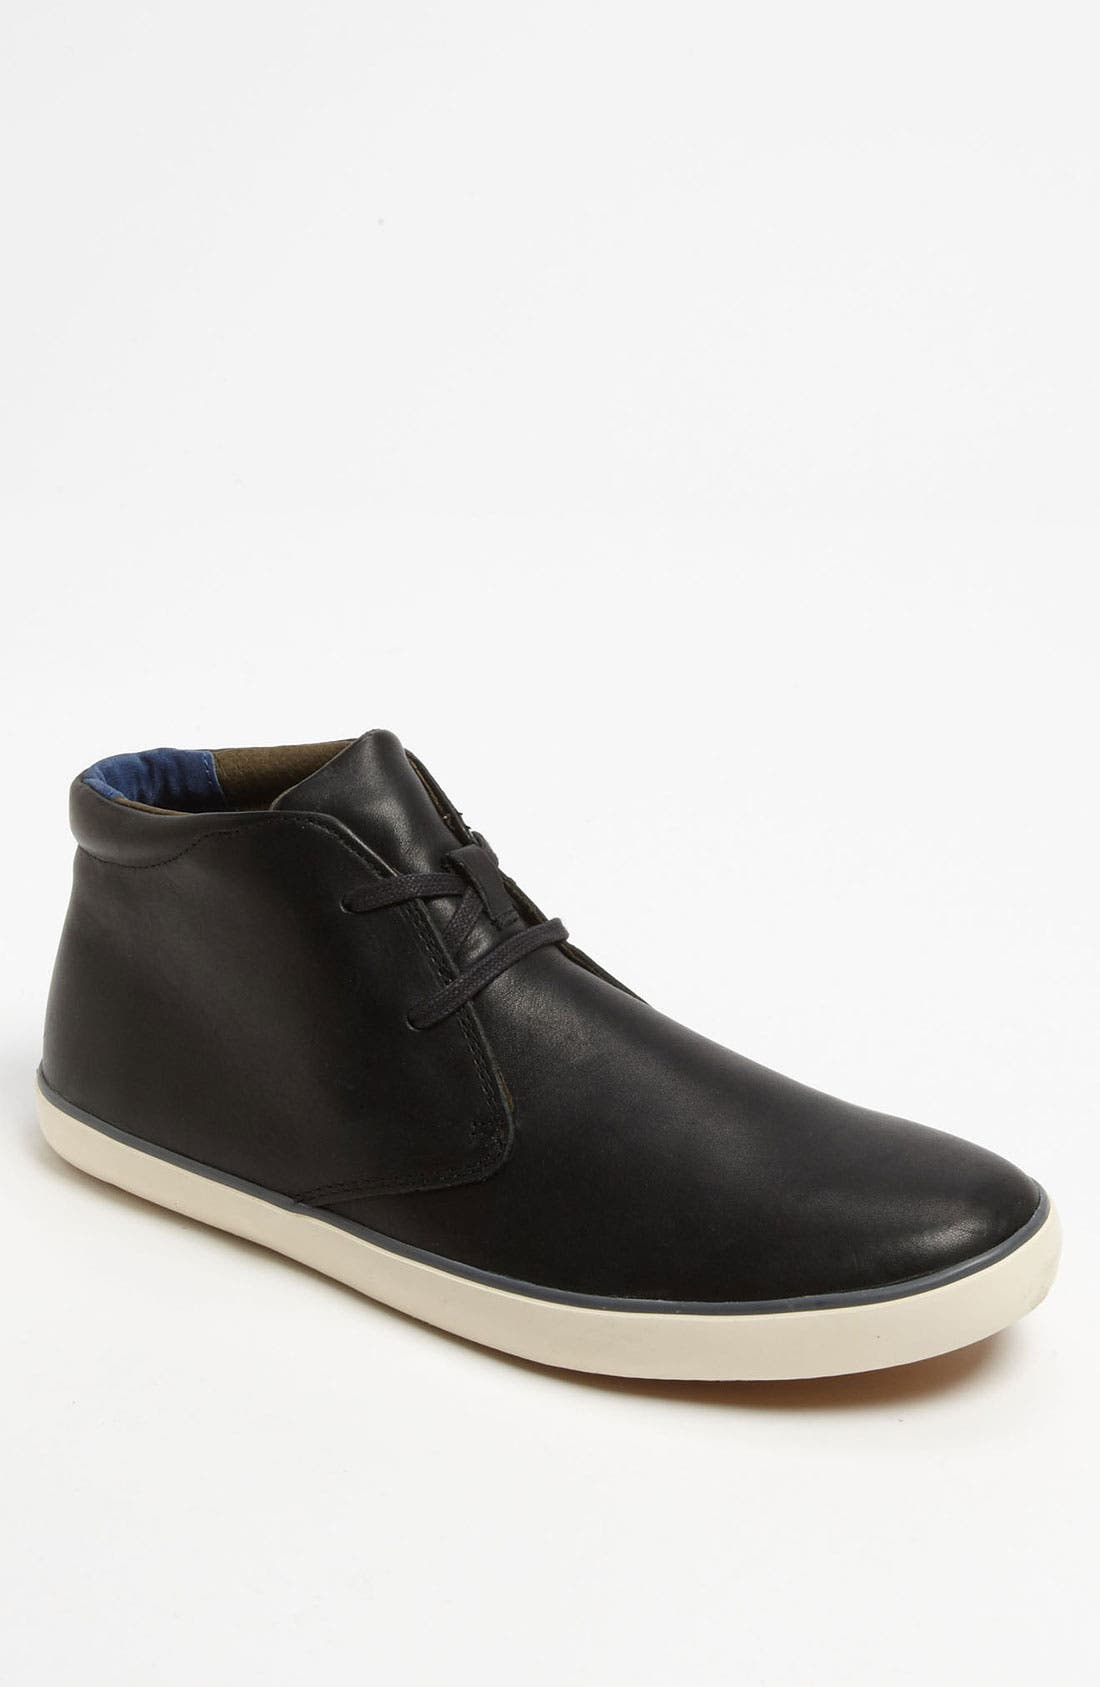 Alternate Image 1 Selected - Camper 'Romeo Vulcanizado' Chukka Boot